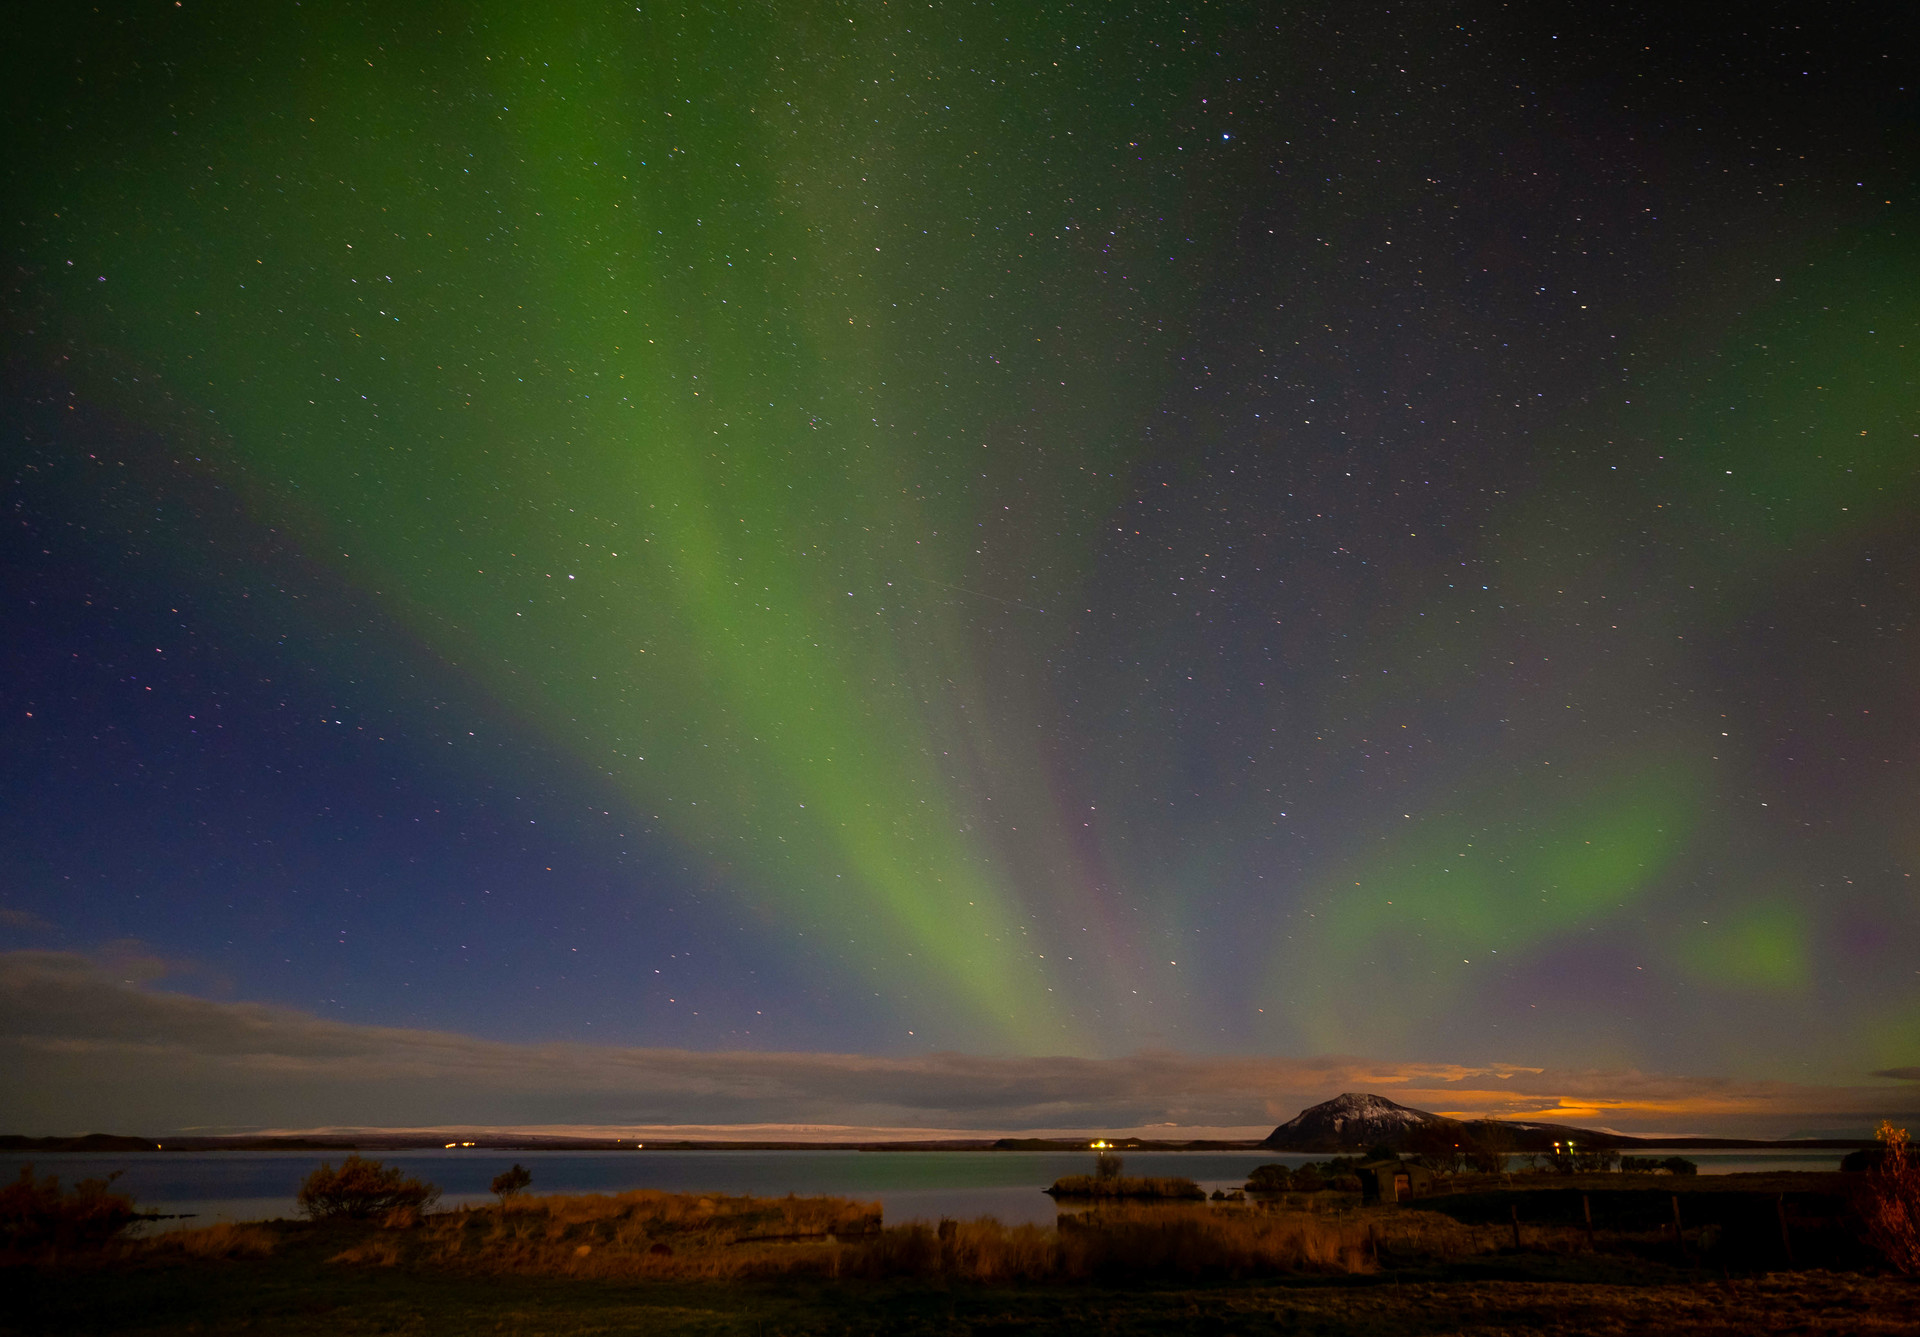 Aurora borealis-Nothern lights, at lake Myvtan, iceland